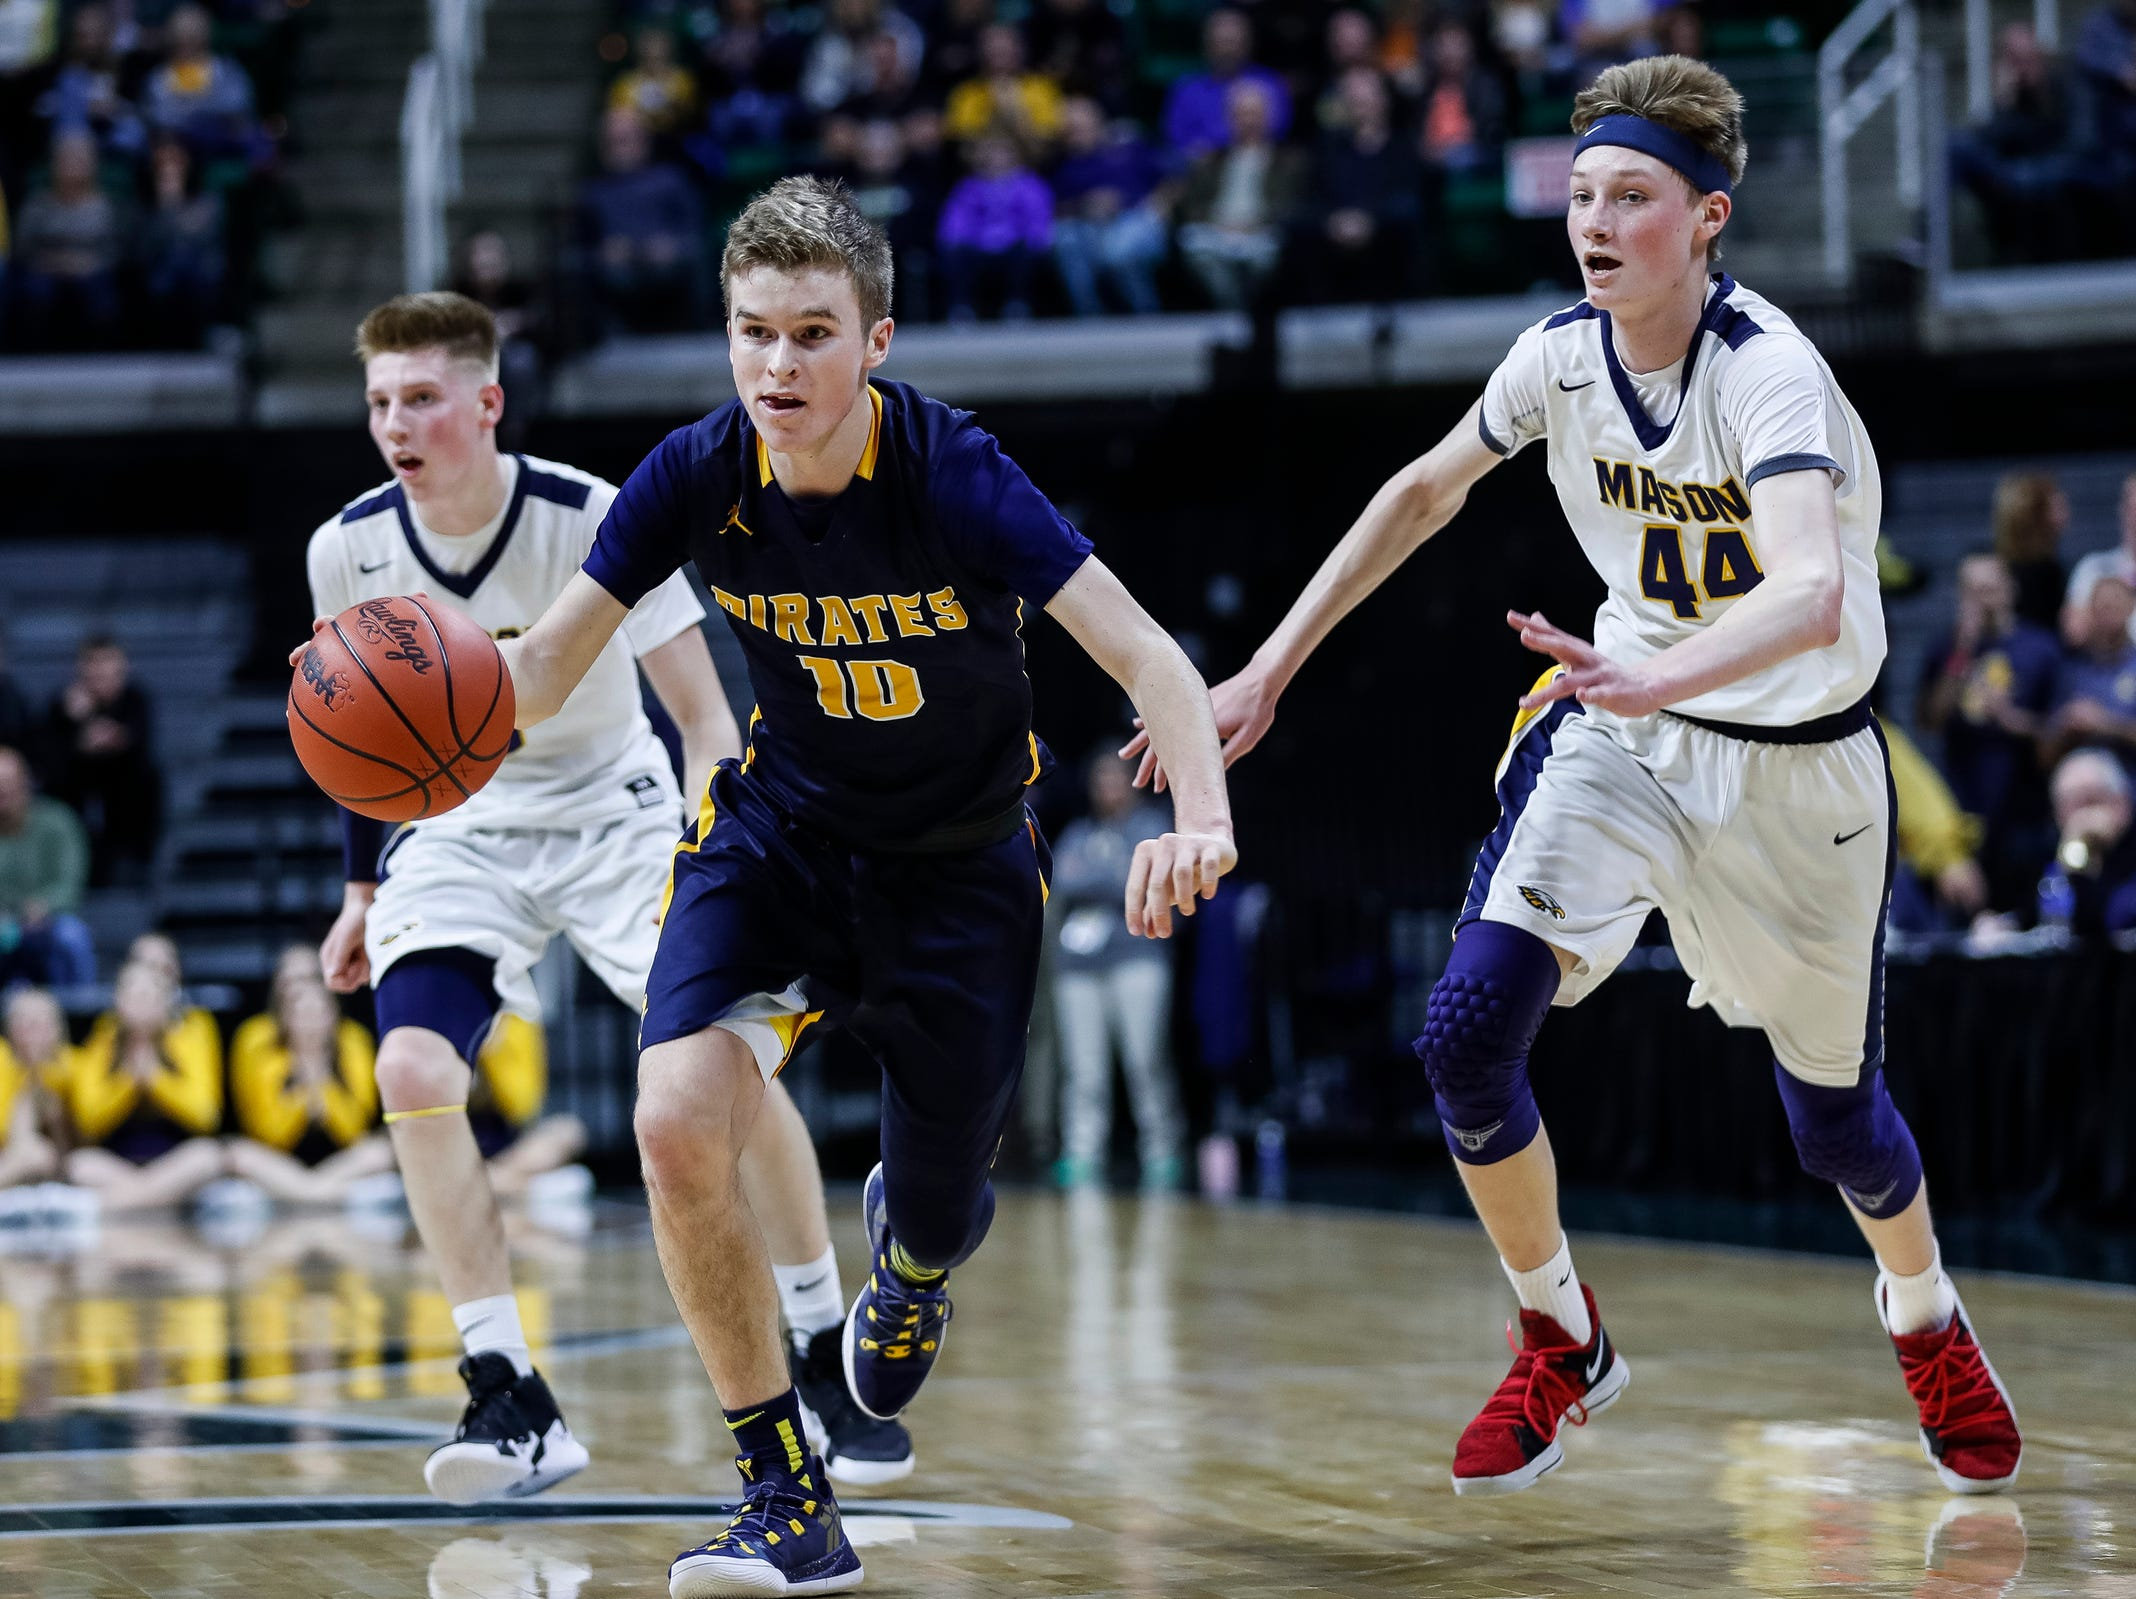 Pewamo-Westphalia's Hunter Hengaesbach (10) dribbles against Erie-Mason's John Sweeney (44) during the first half of MHSAA Division 3 semifinal at the Breslin Center in East Lansing, Thursday, March 14, 2019.